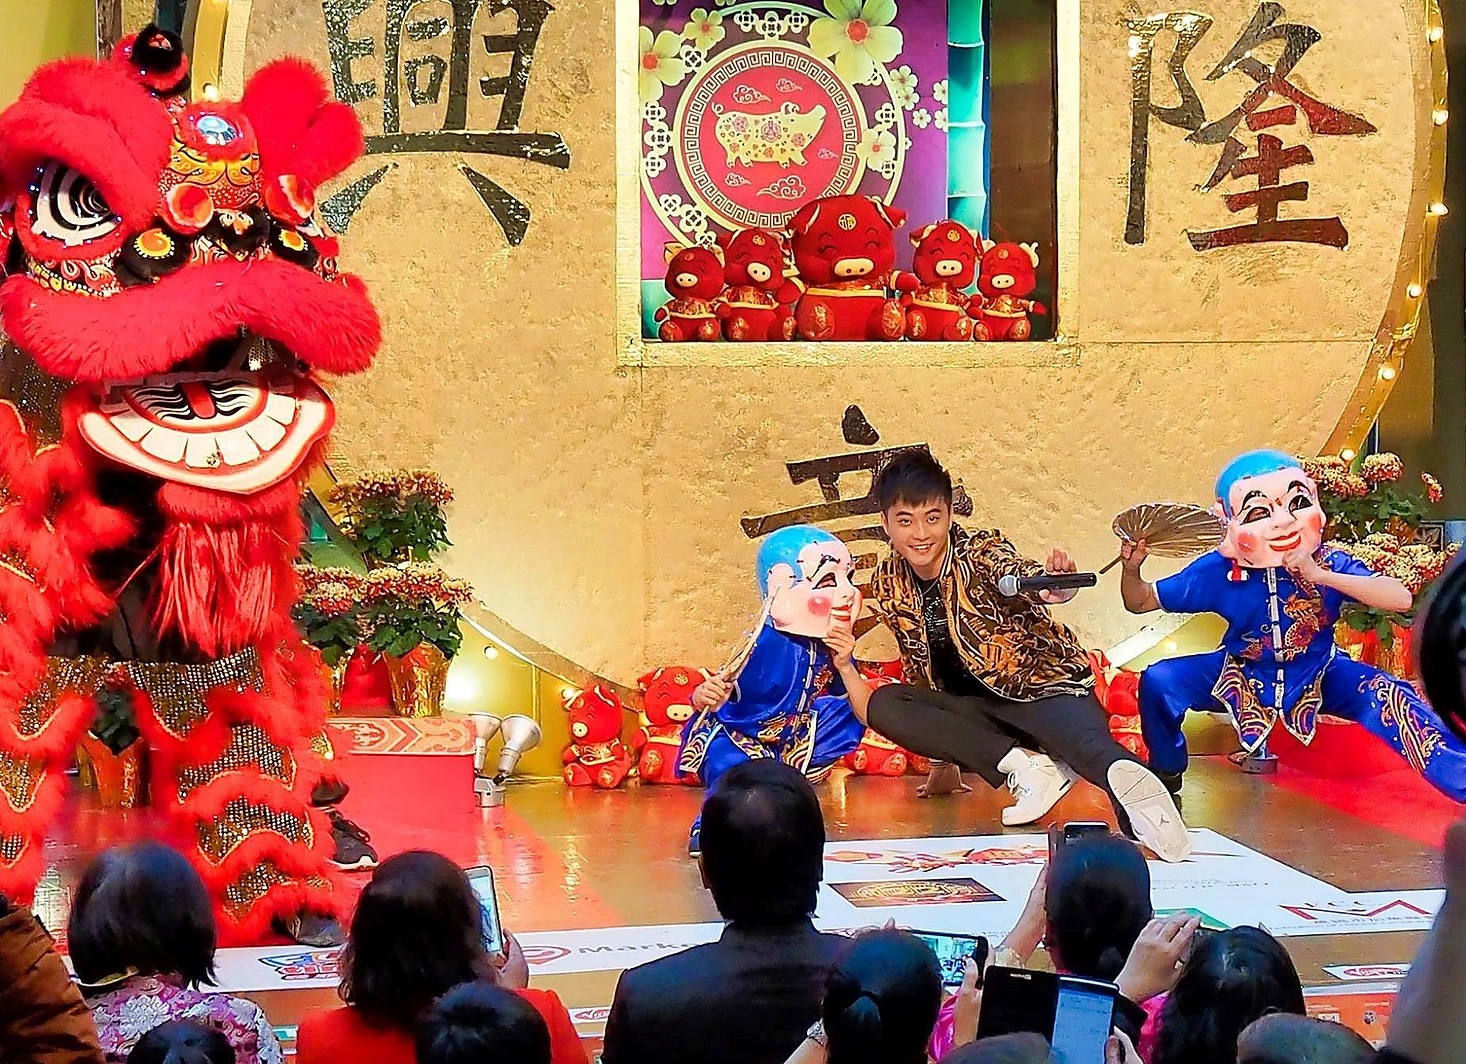 wayland-li-wushu-pacific-mall-chinese-new-year-2019-03.jpg